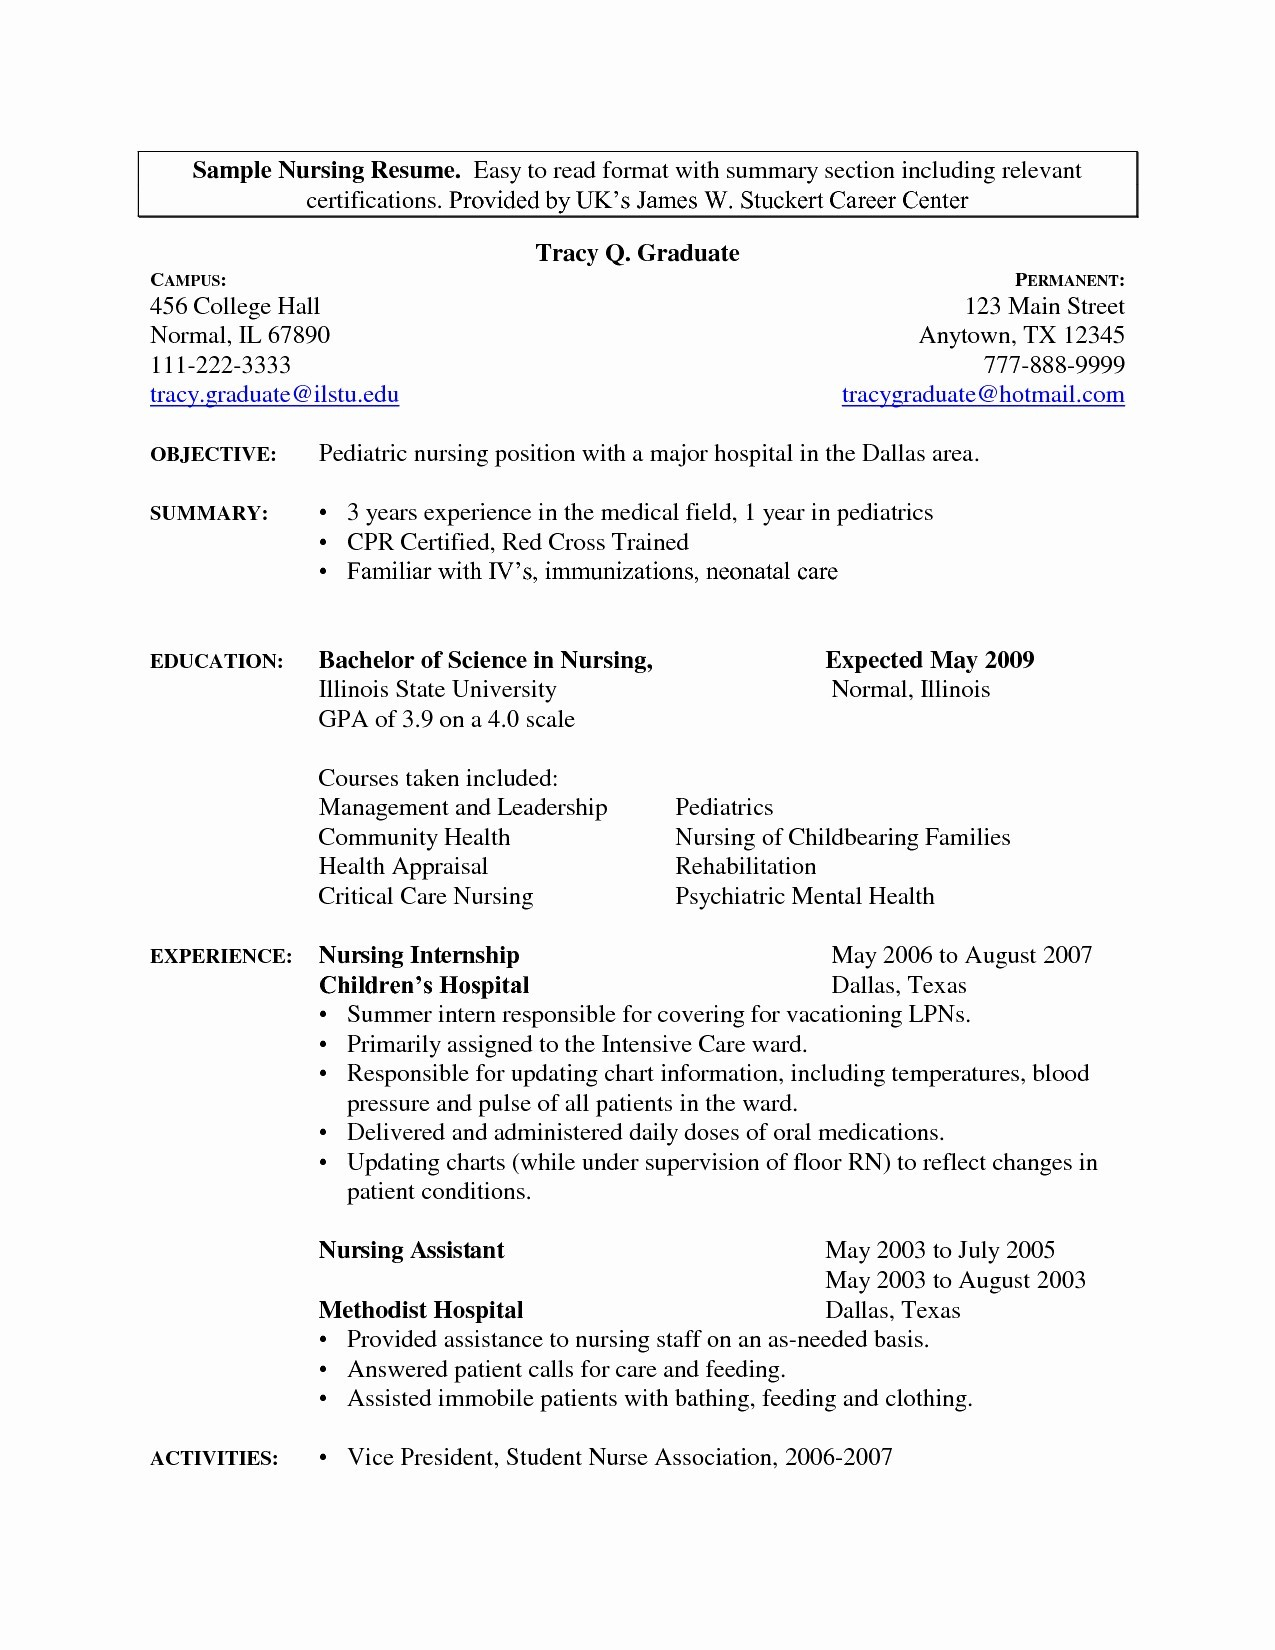 What to Put Under Leadership On A Resume - Leadership Skills Resume Lovely 26 What to Put Resume Free Download